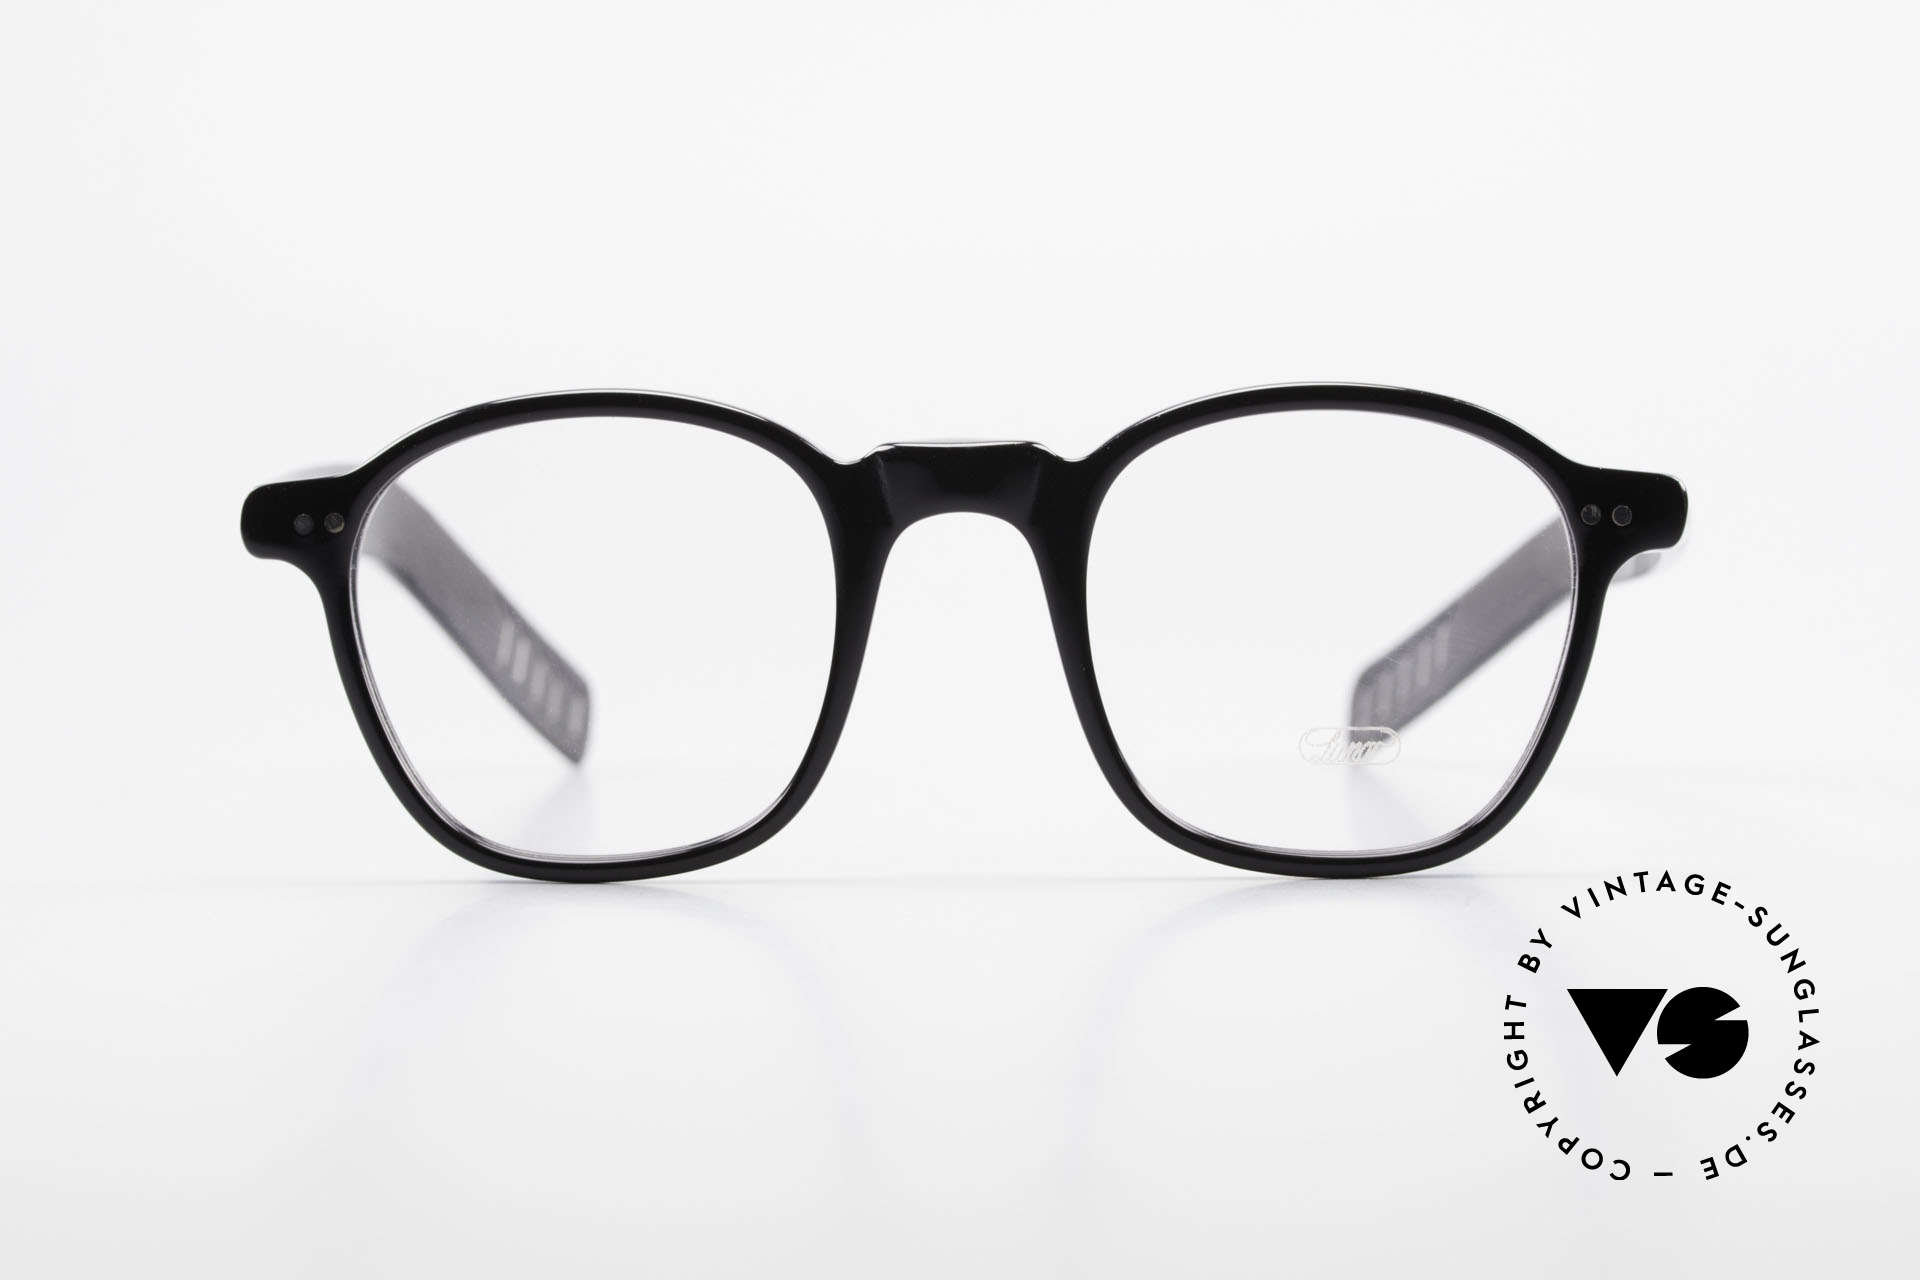 Lunor A51 James Dean Johnny Depp Specs, similar to the old 'Tart Optical Arnel' frames of the 50/60s, Made for Men